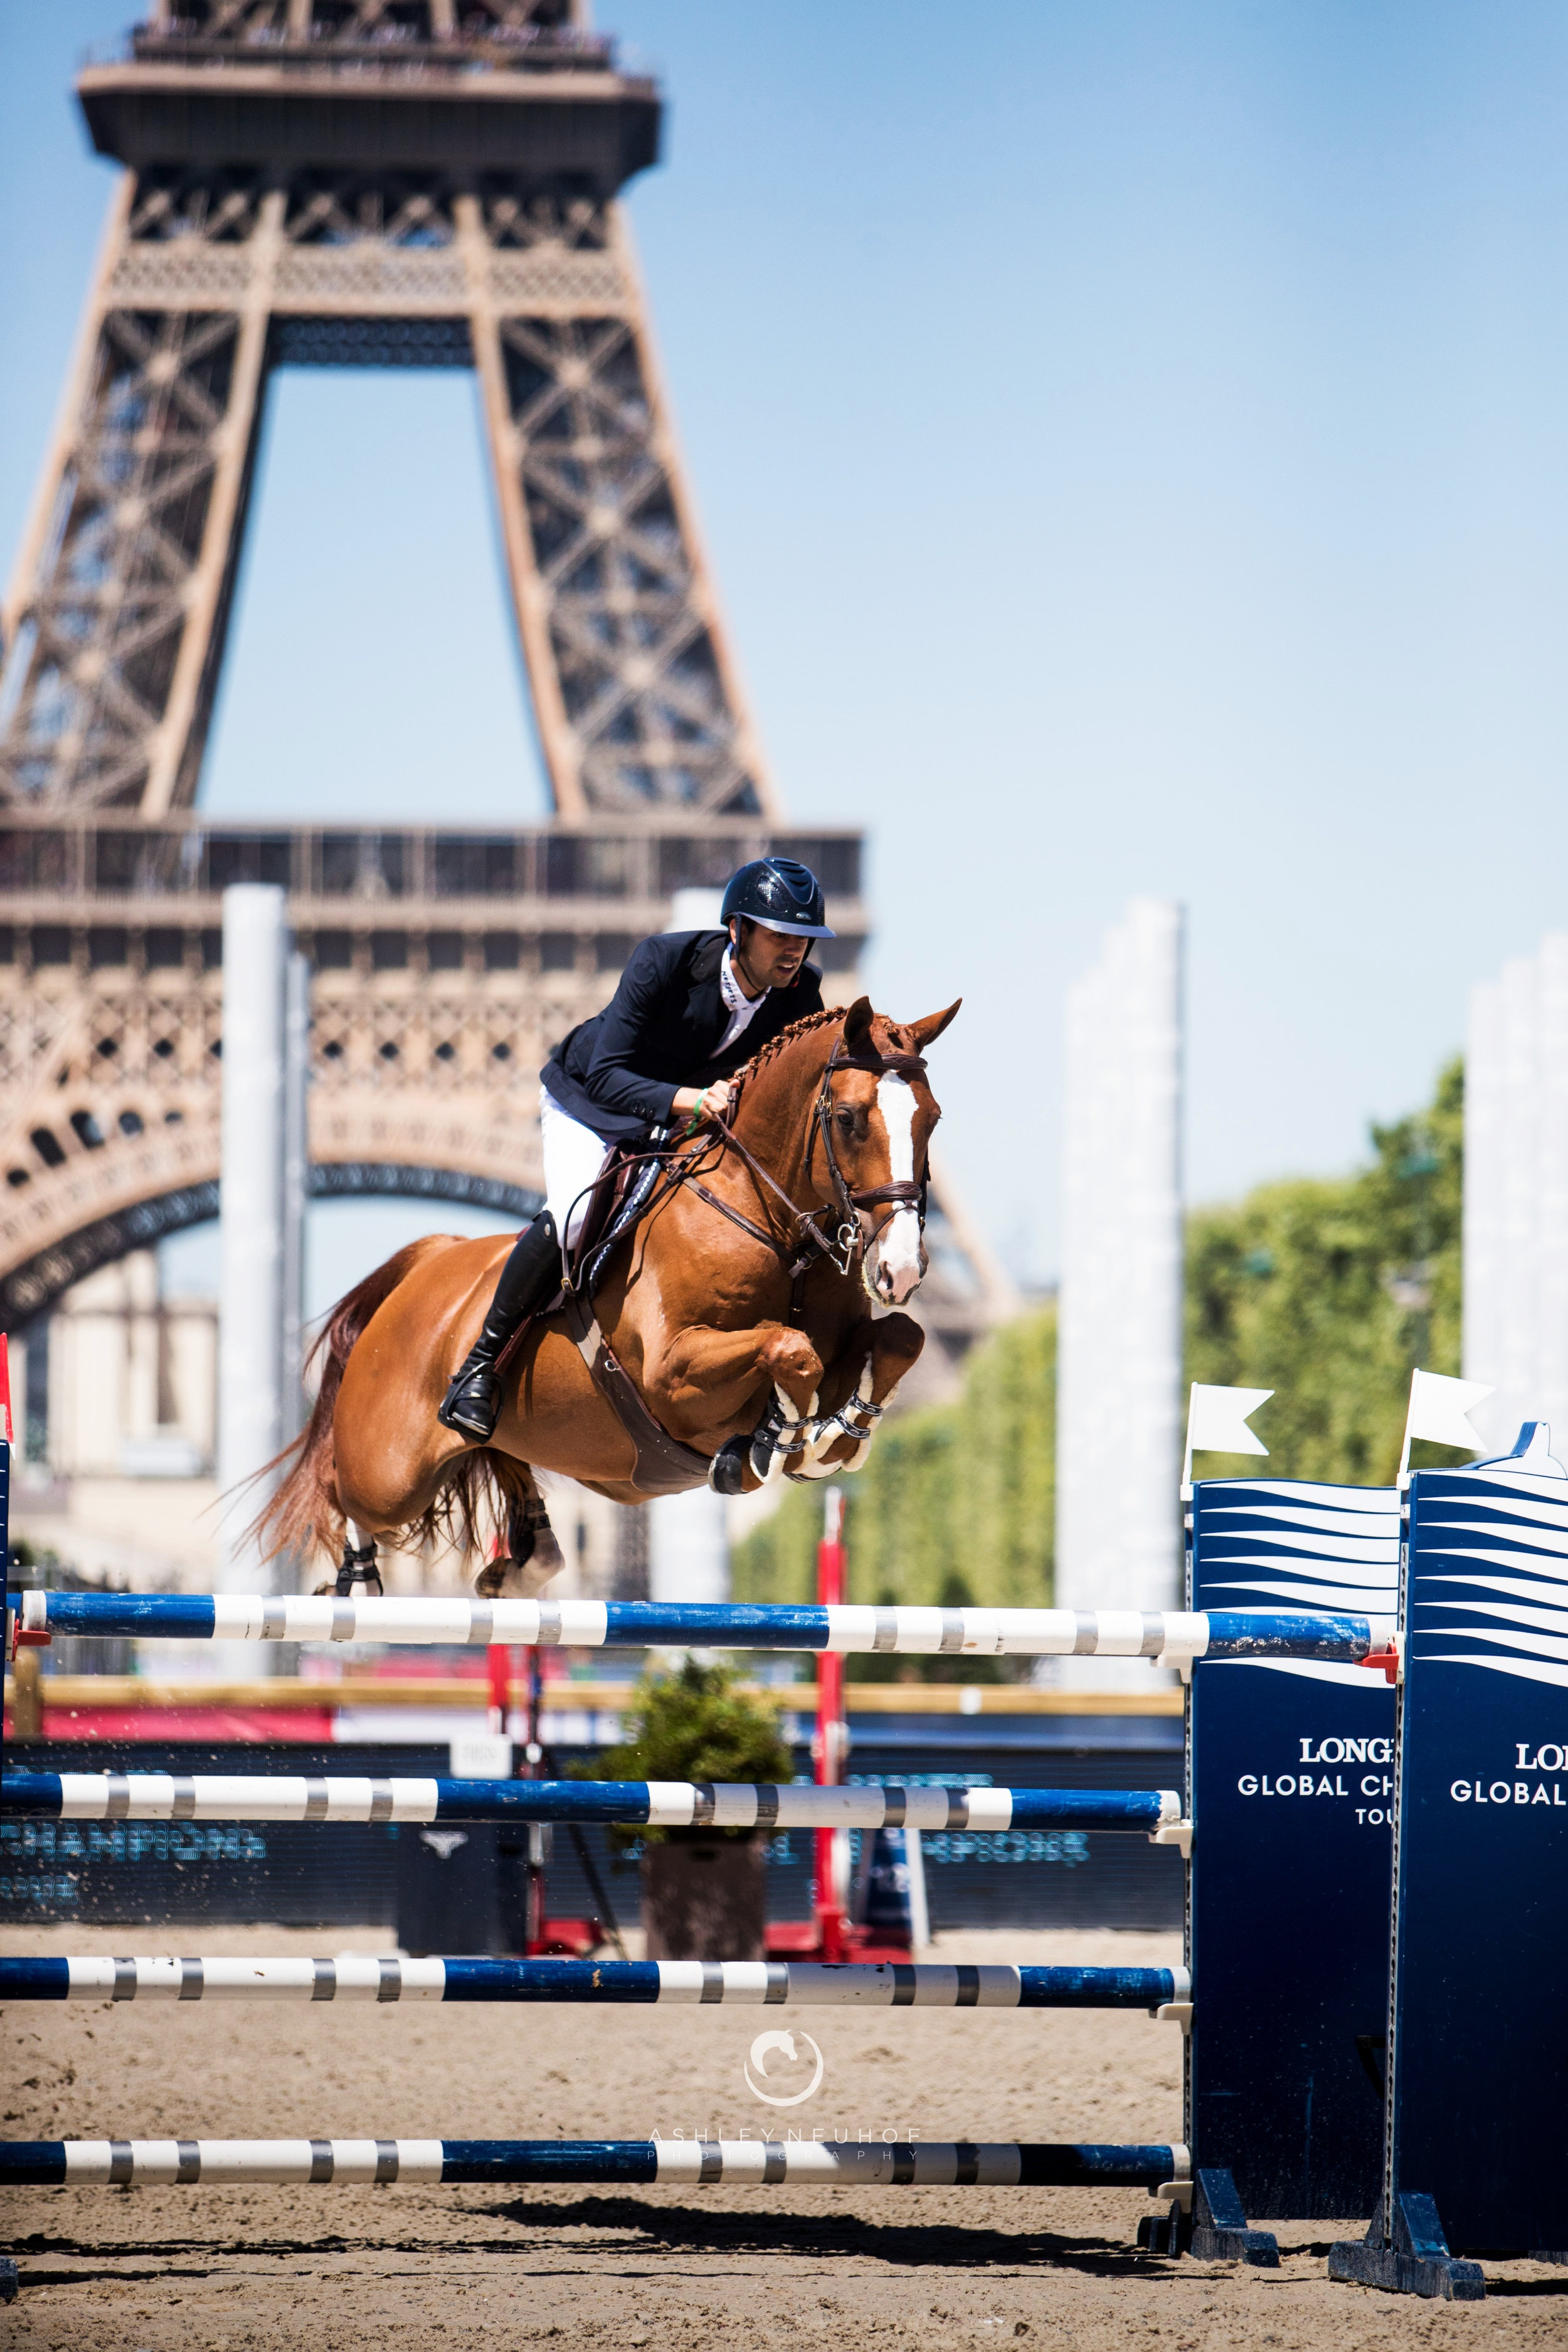 Nayel Nassar and Oaks Redwood at Longines Global Champions Tour of Paris 2019. Photo by Ashley Neuhof Photography.